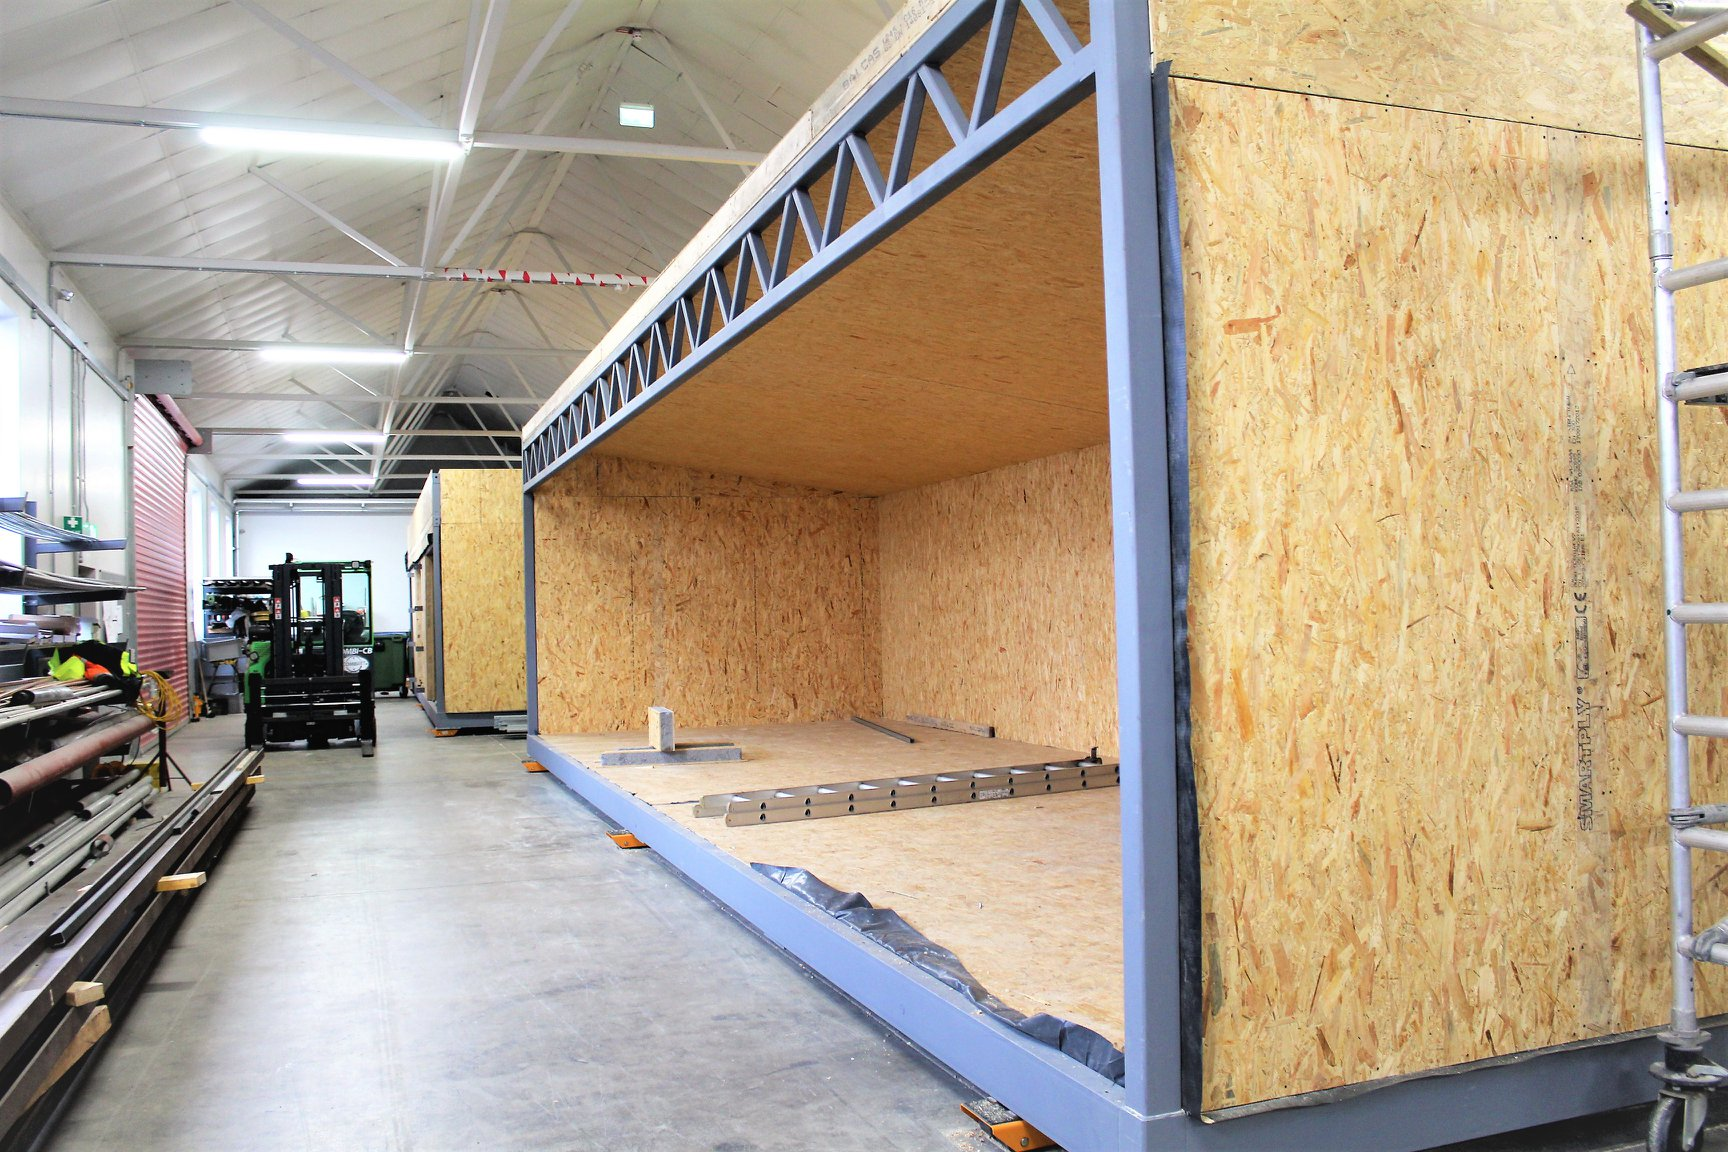 Structurally Insulated Panels (SIP Panels) are a high-performance building material used in the construction of SmartBuild modular buildings.